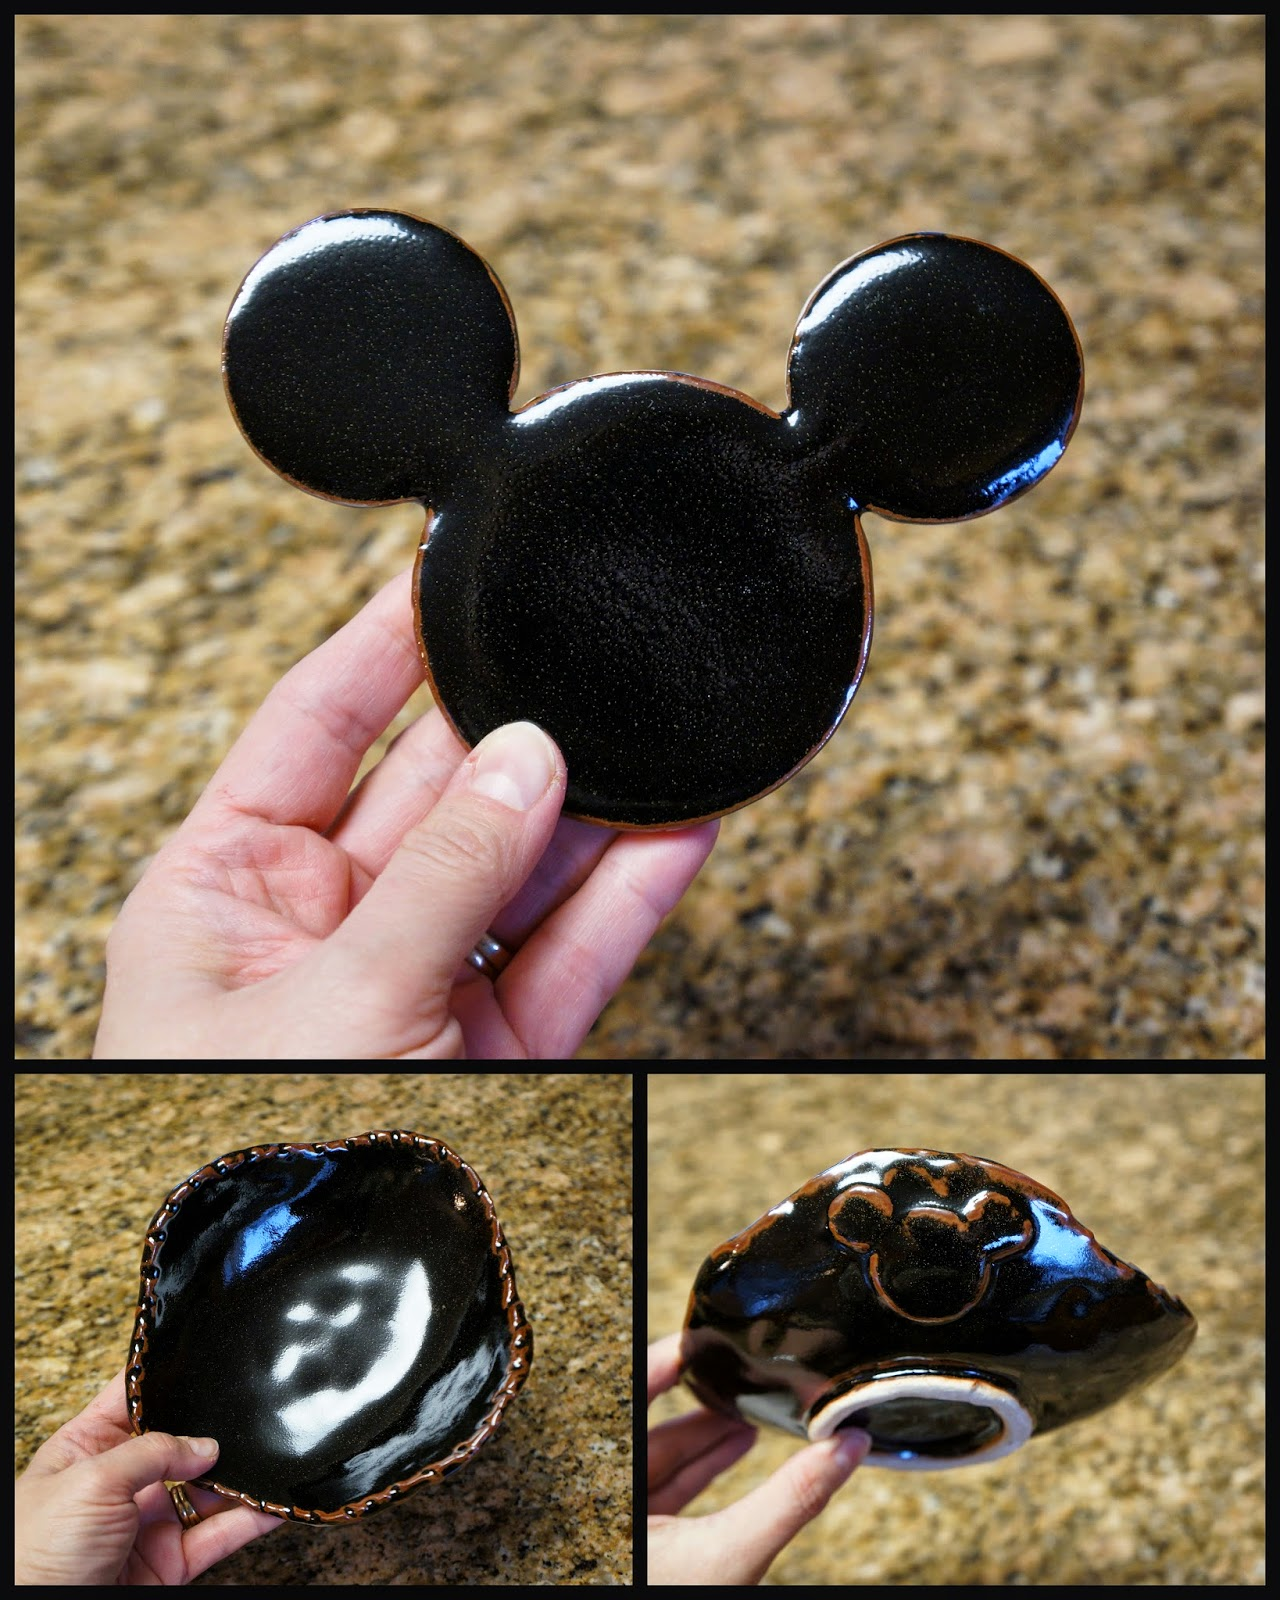 Unique handmade pottery / ceramic coaster and bowl with Mickey Mouse design.